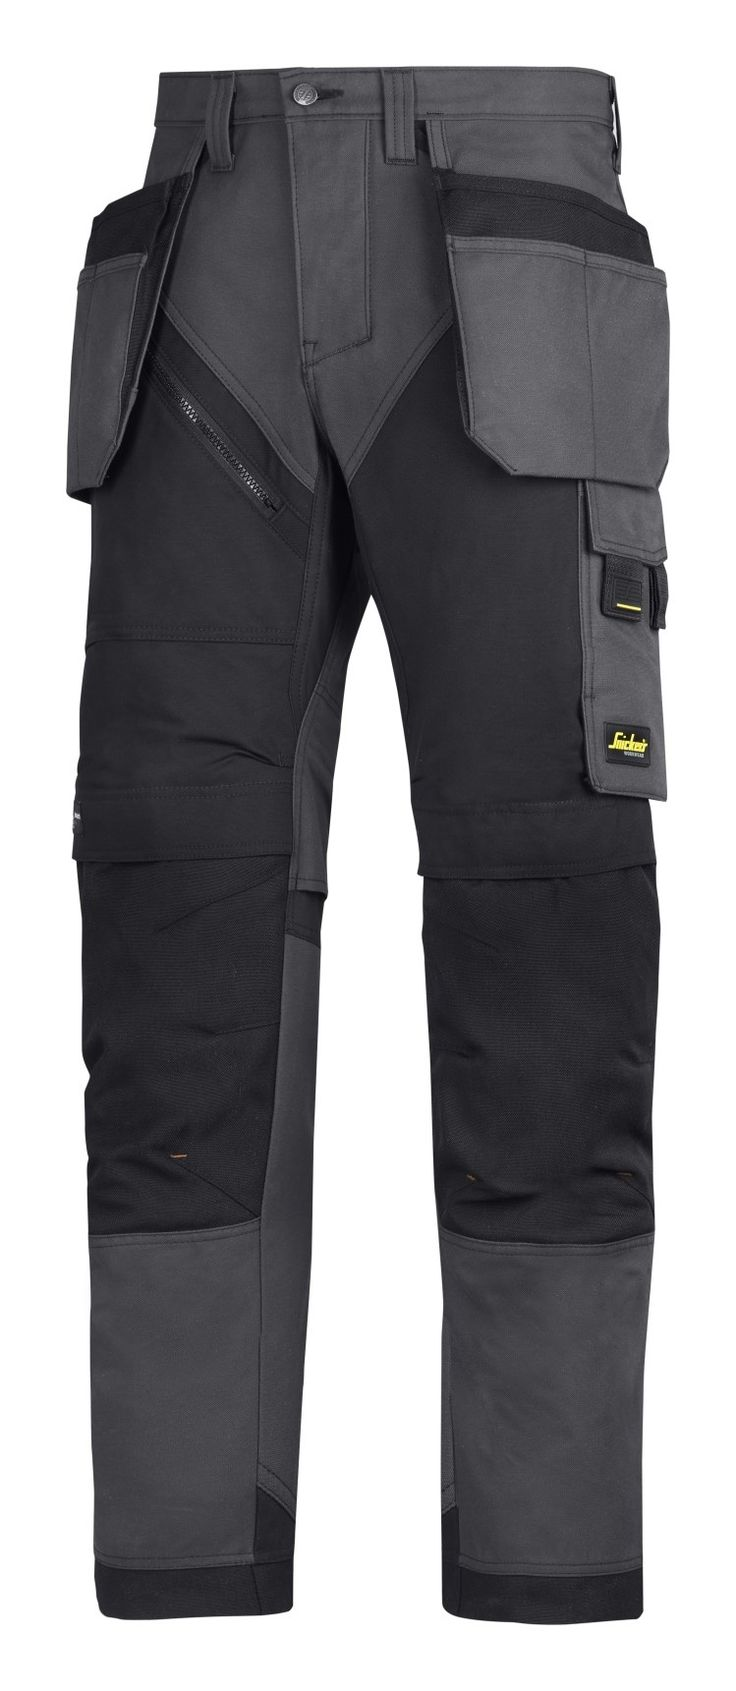 These #RuffWork trousers come in four different colors; black, navy, petrol and this steel grey color. What color do you prefer for your #workwear?